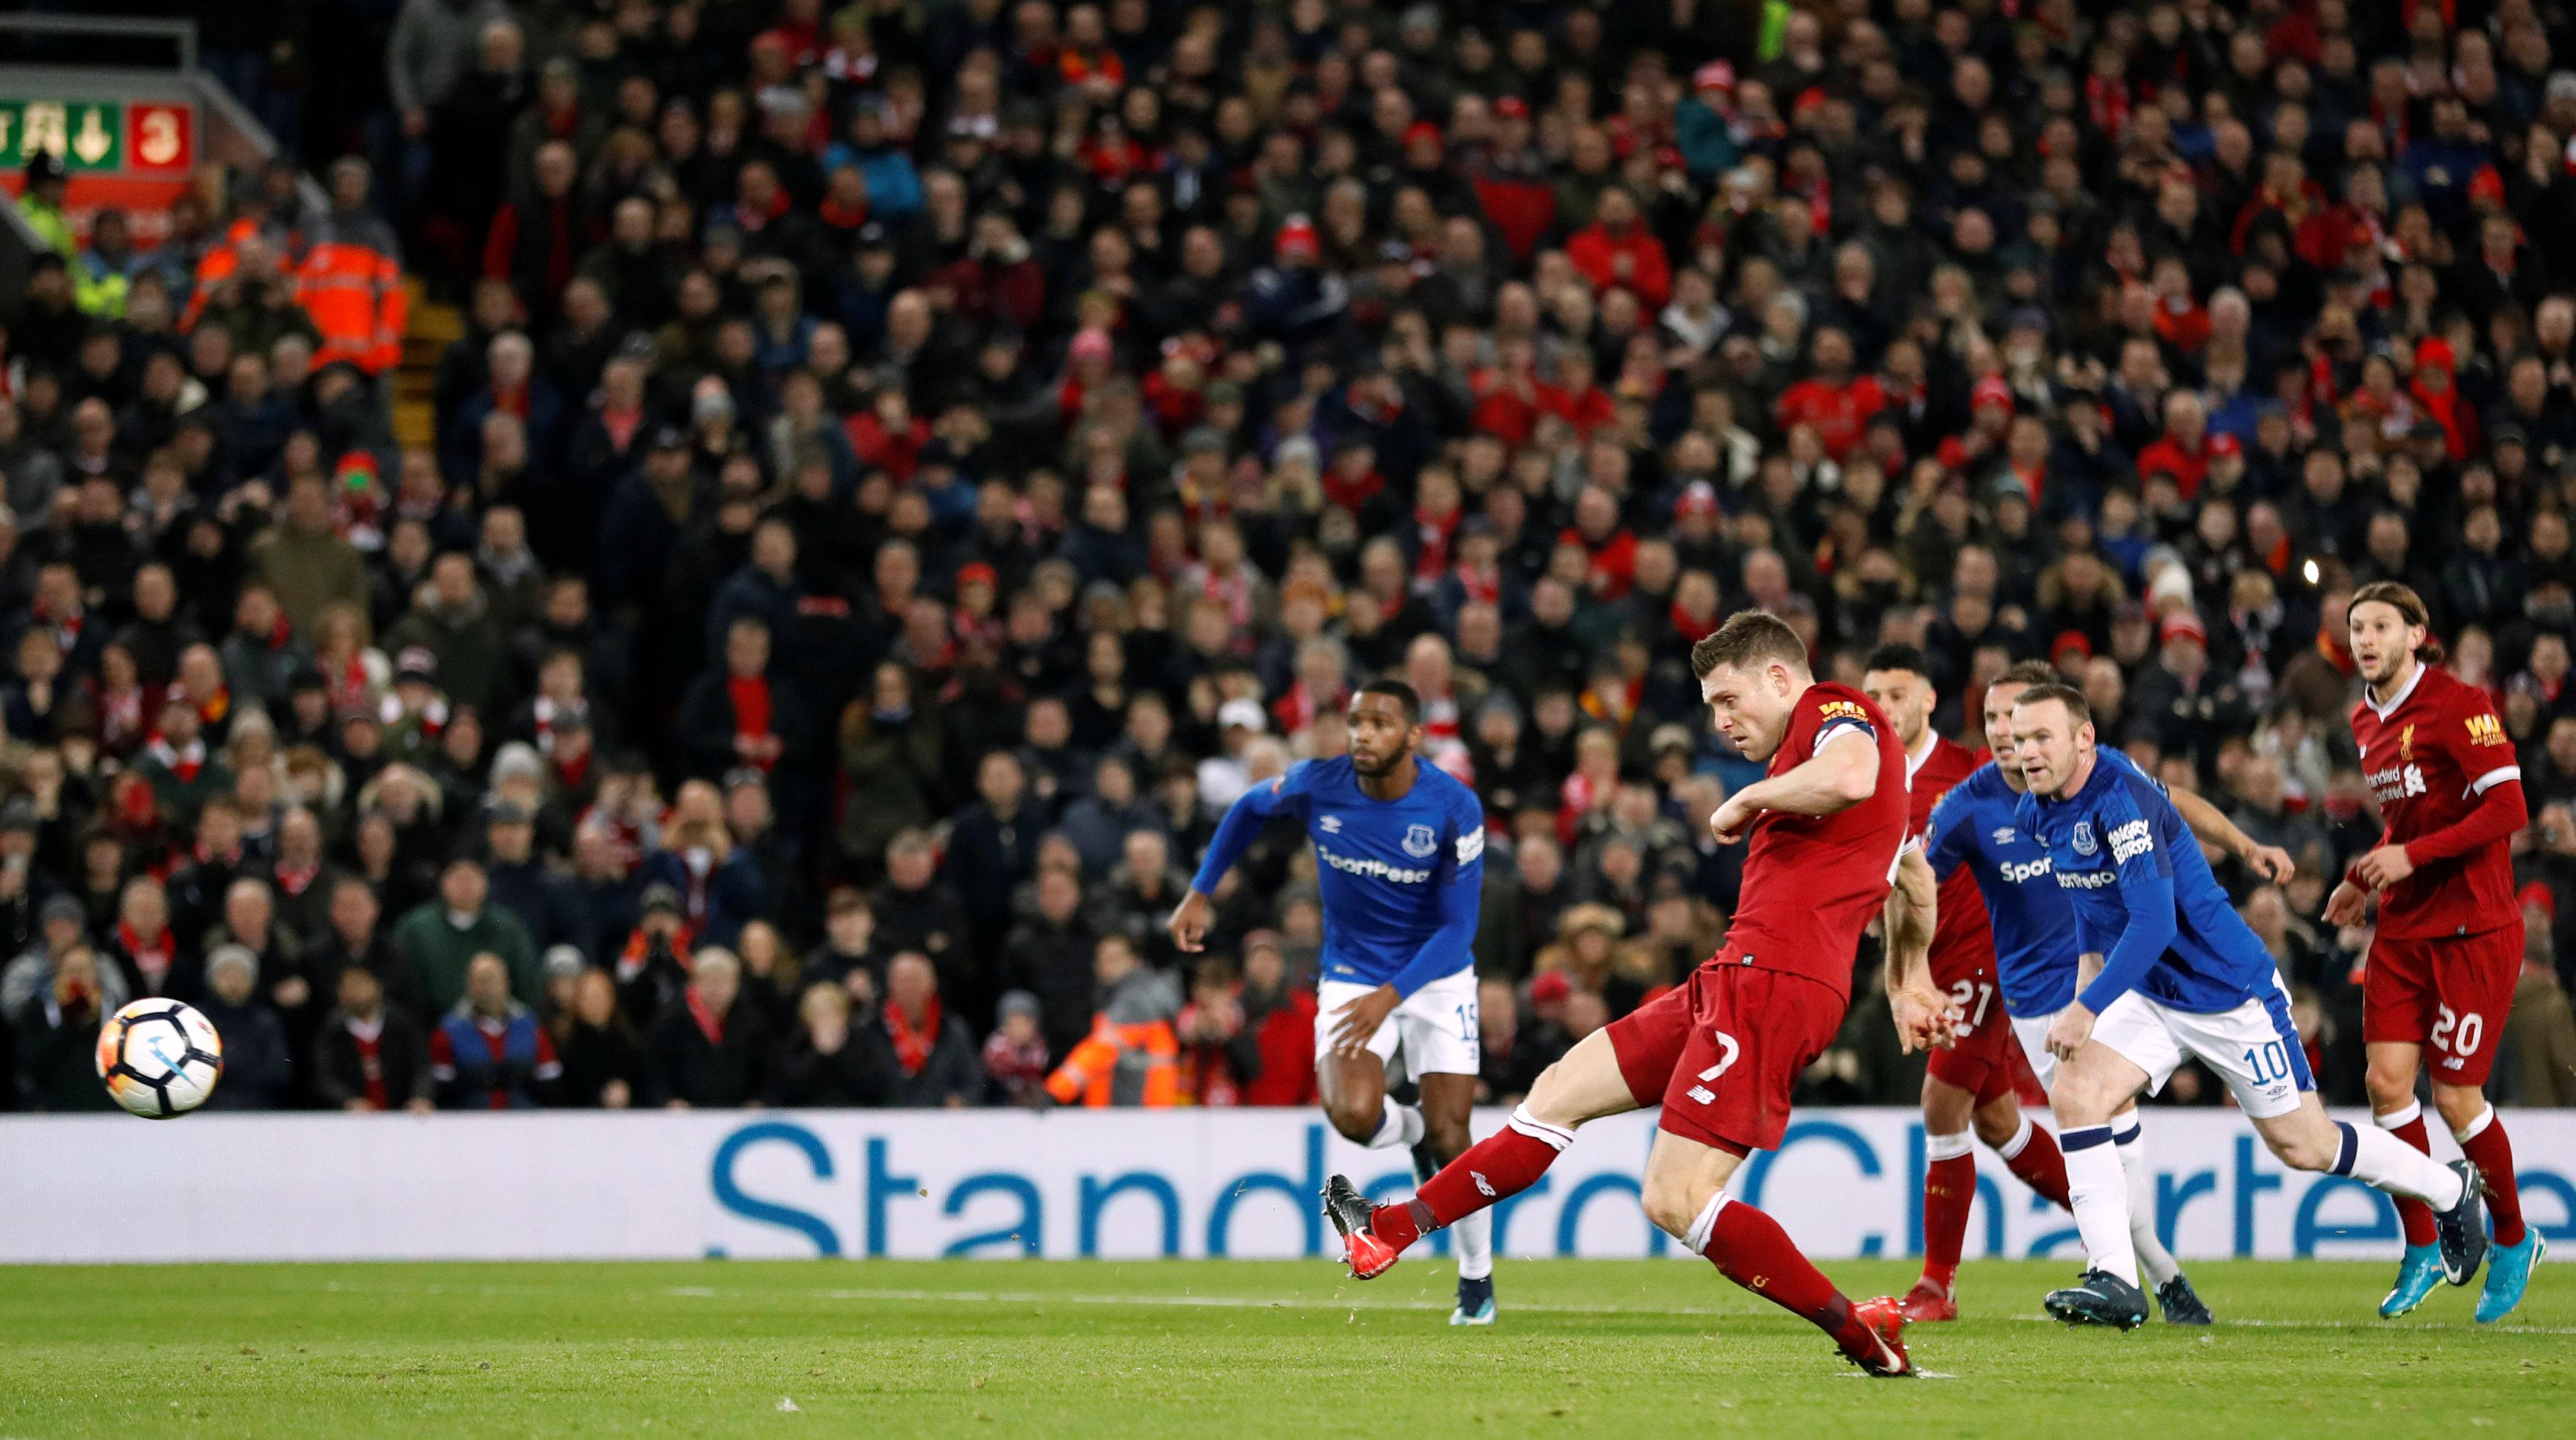 Milner converted from the spot